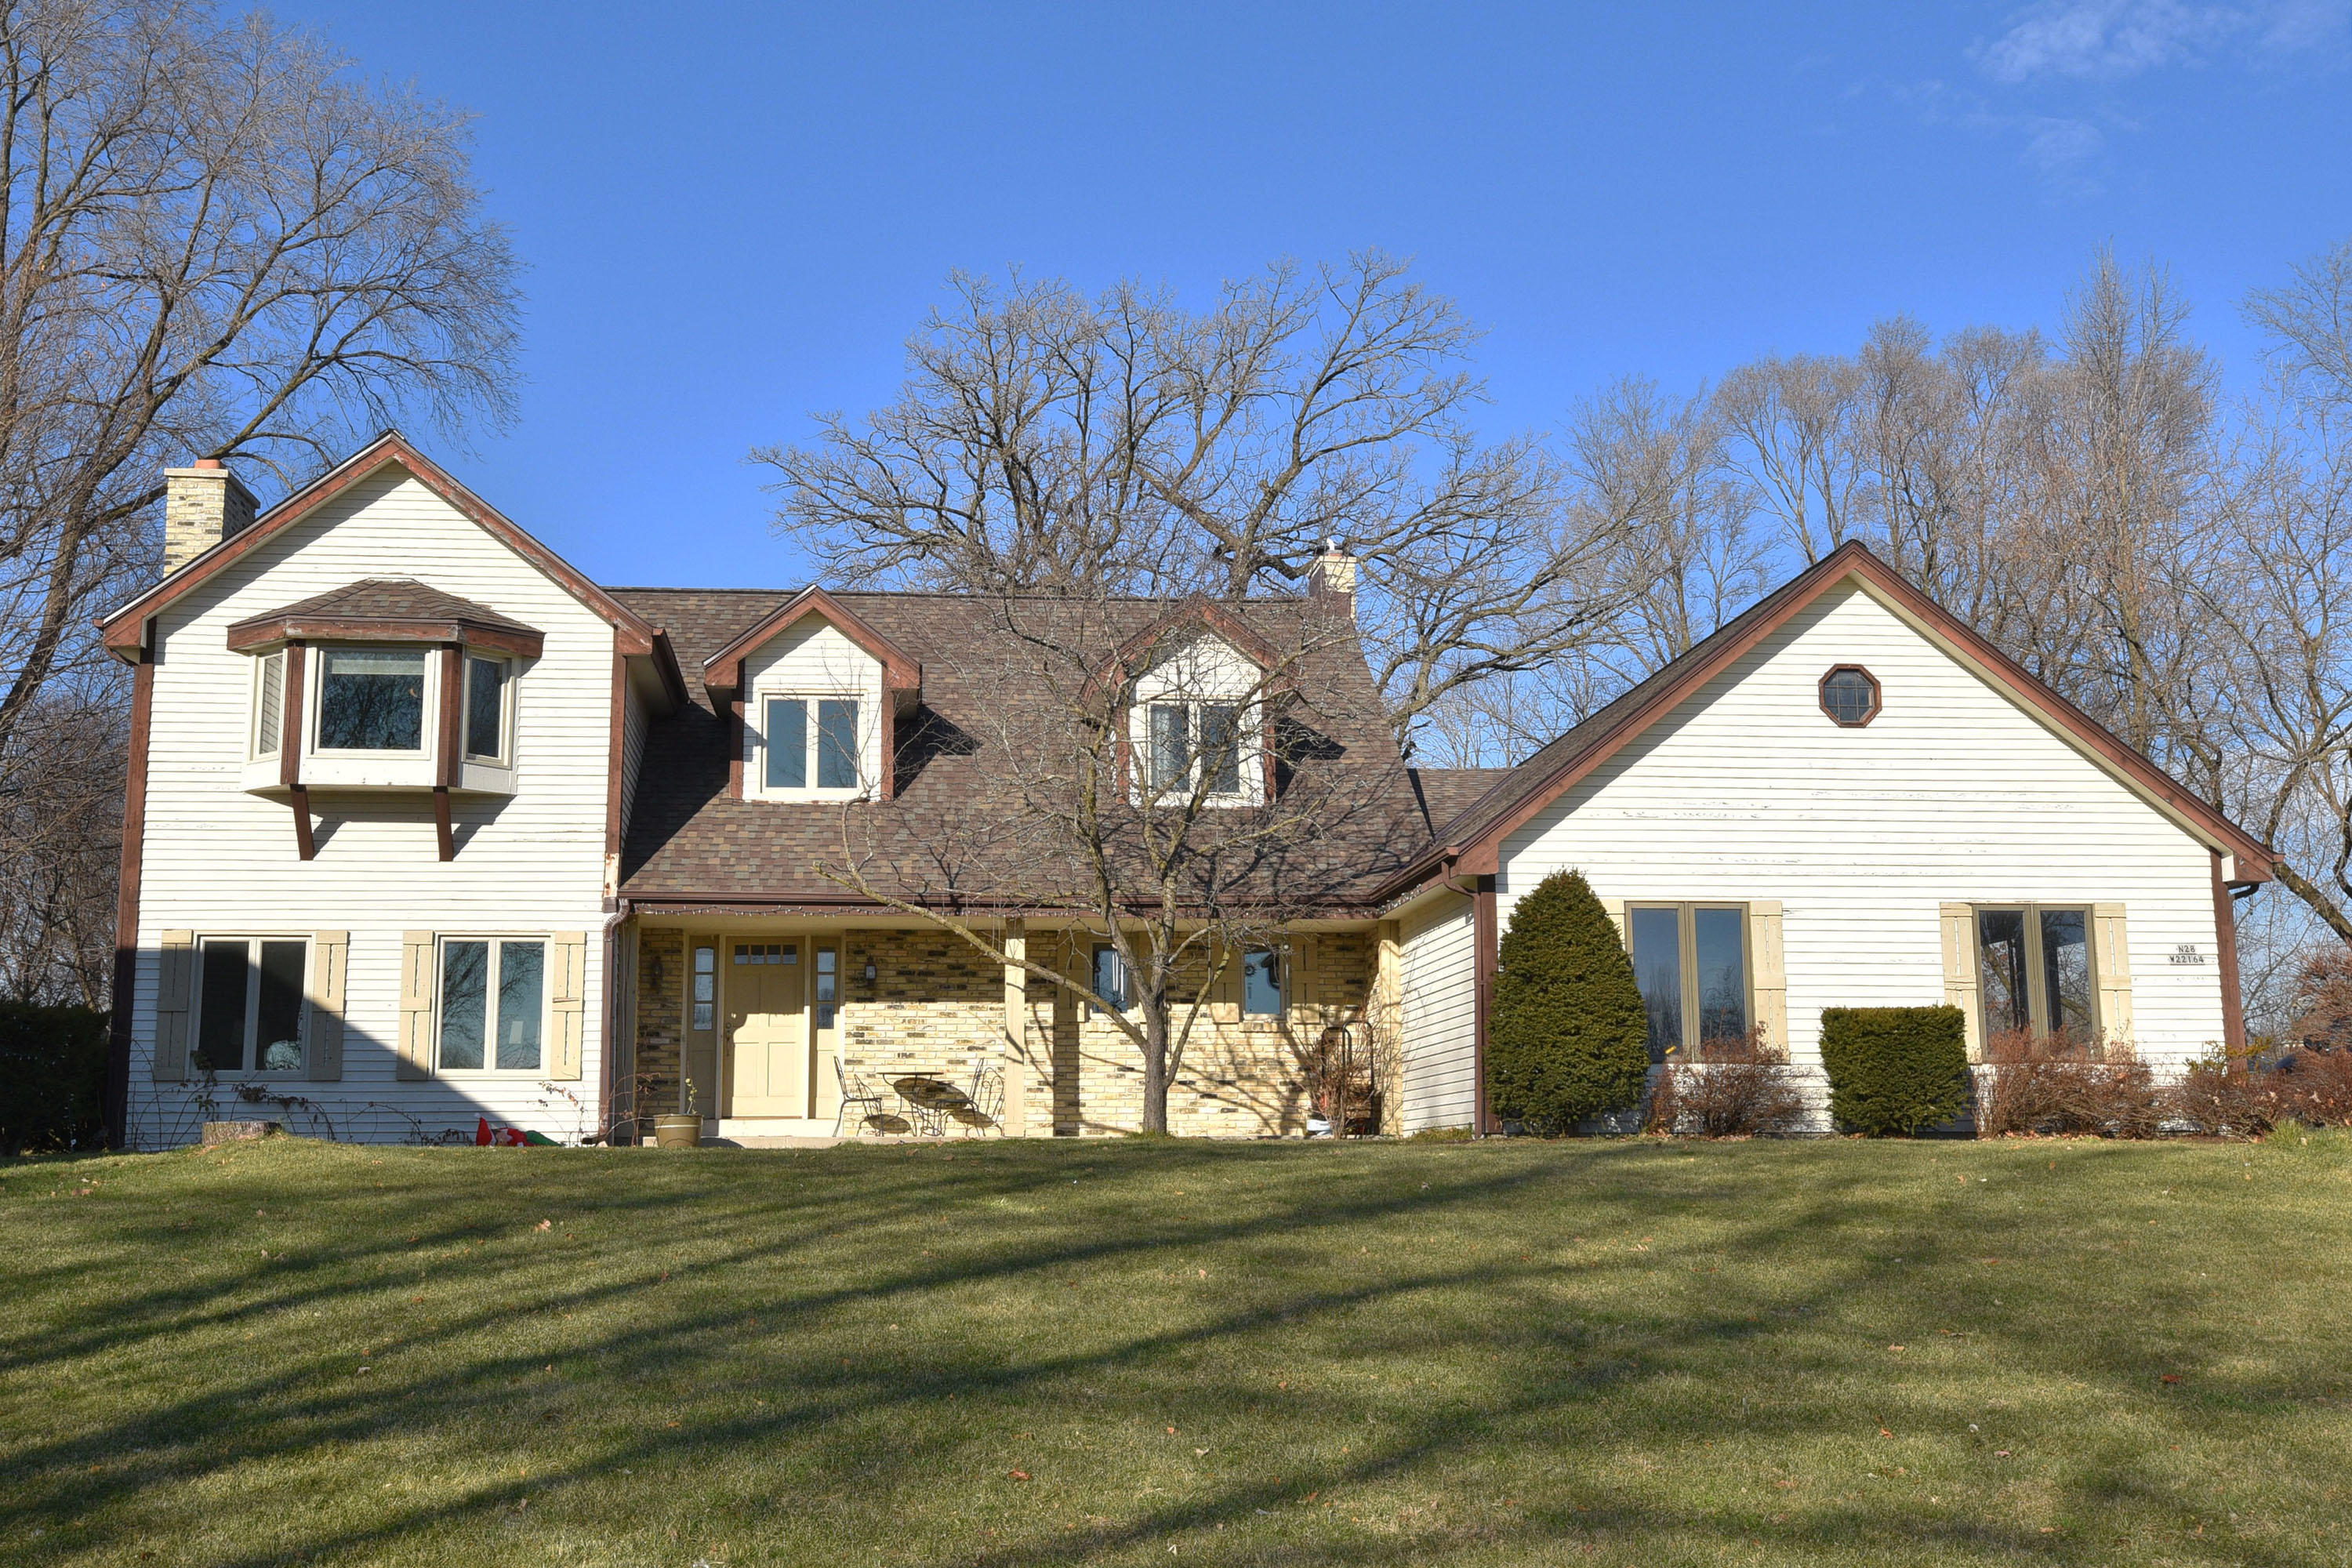 N28W22164 Indianwood Ct, Pewaukee, Wisconsin 53186, 4 Bedrooms Bedrooms, ,3 BathroomsBathrooms,Single-Family,For Sale,Indianwood Ct,1720789